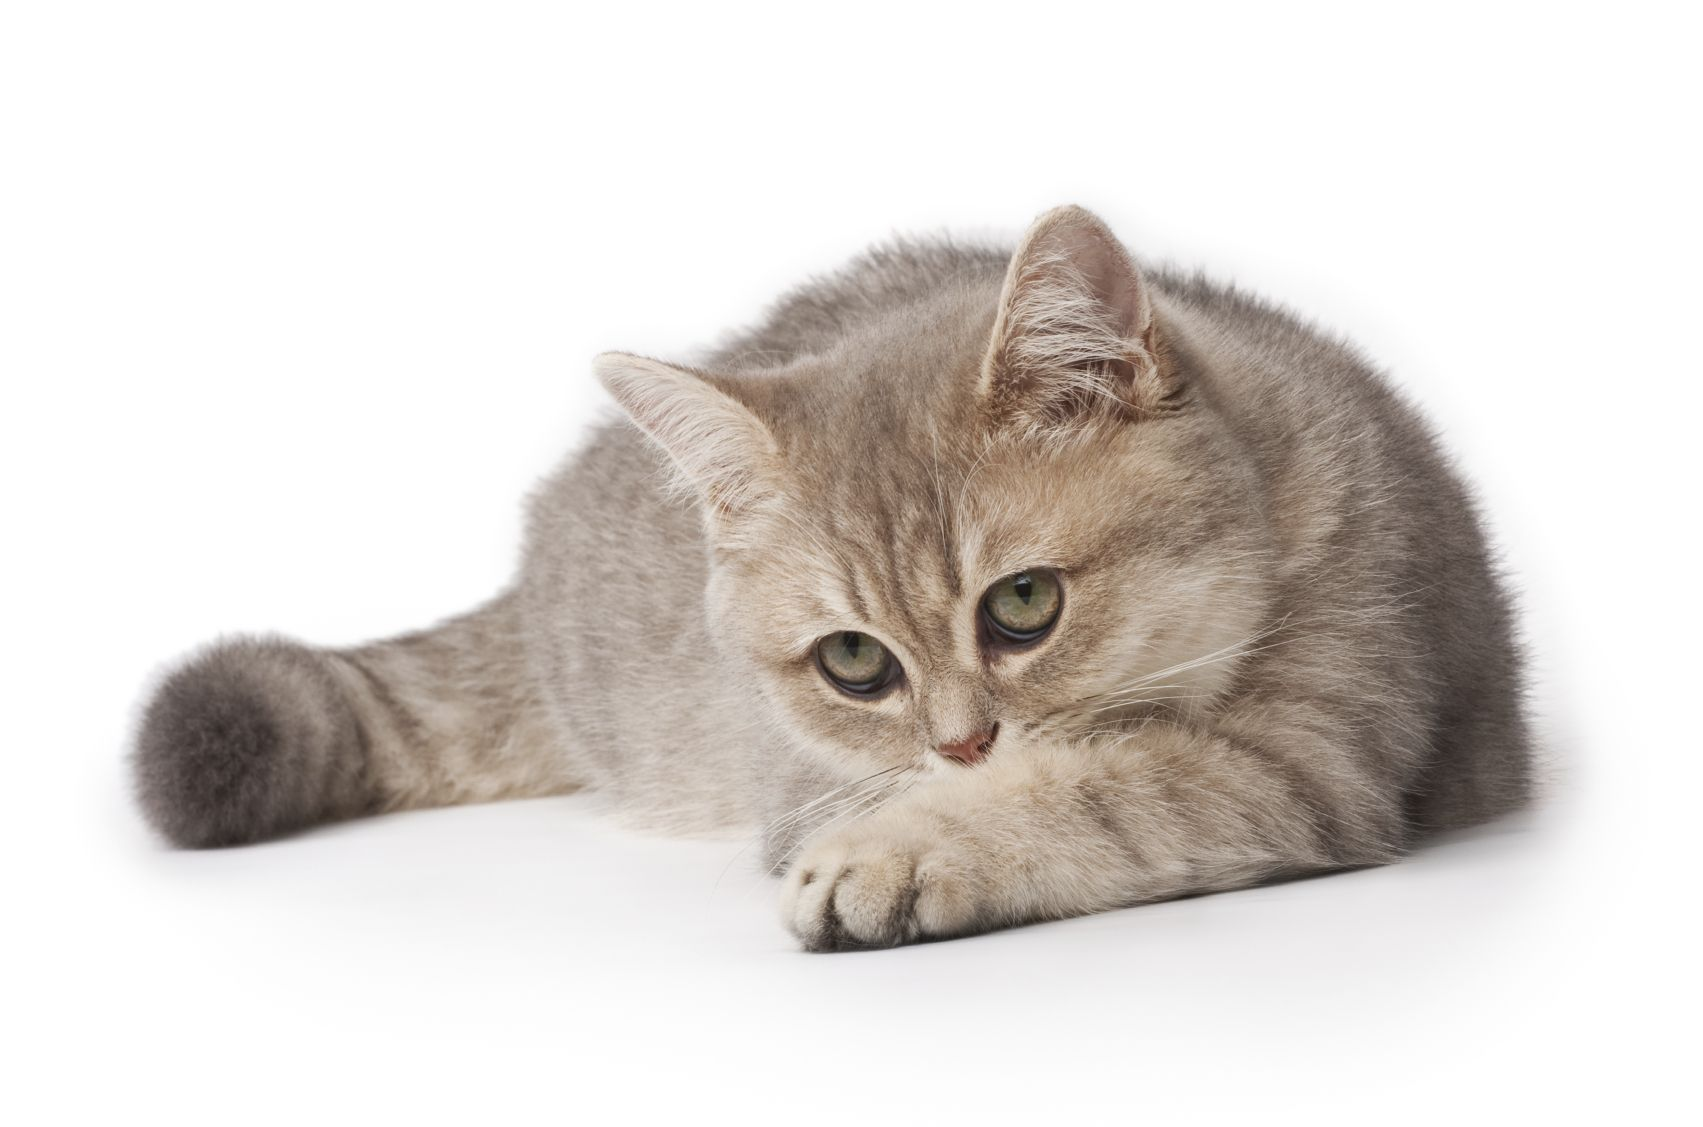 Cats With Feline Hyperesthesia Syndrome Have Bouts Of Skin Twitches As If They Are Uncomfortable Often This Leads To Vocal Animal Companions Feline Pet Care